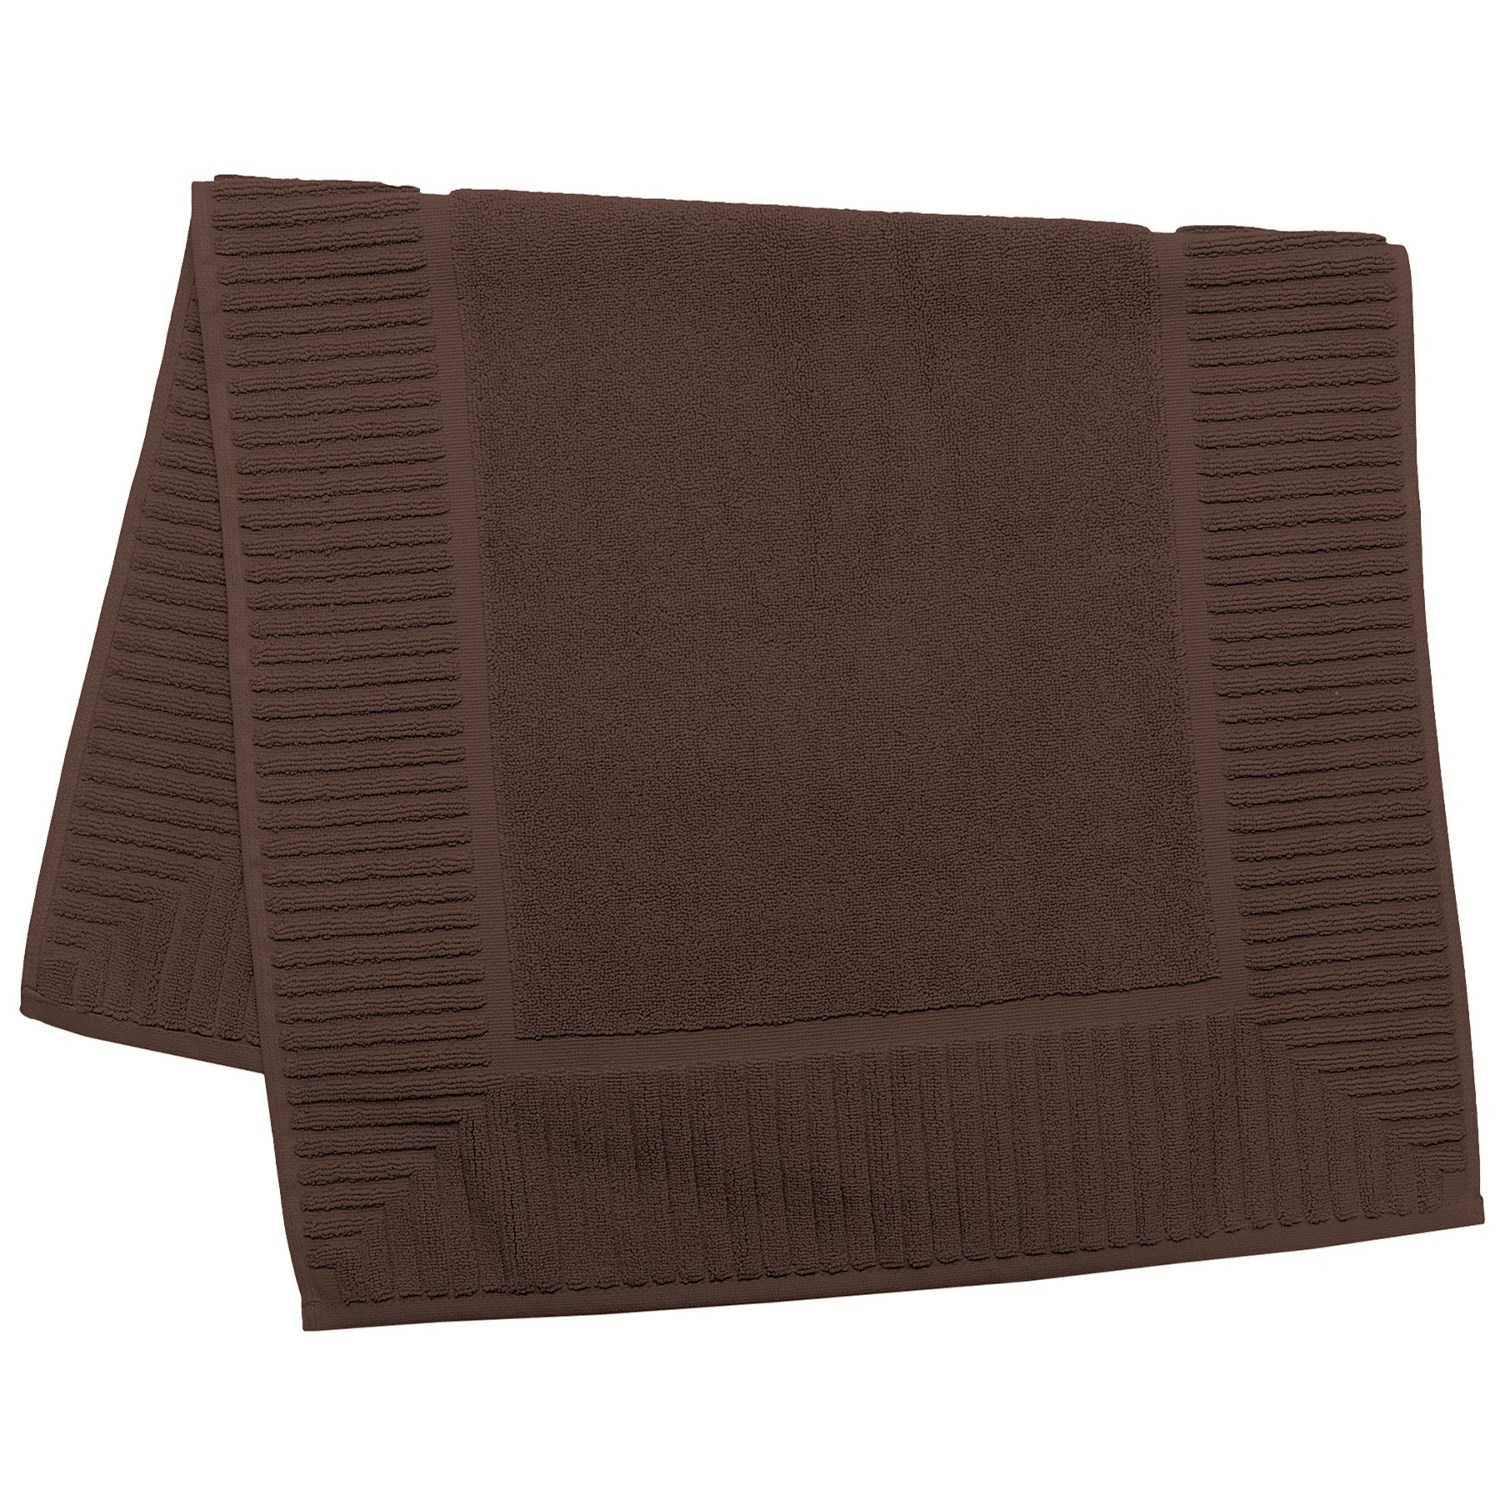 The Turkish Towel Company Zenith Tub Mat Turkish Cotton